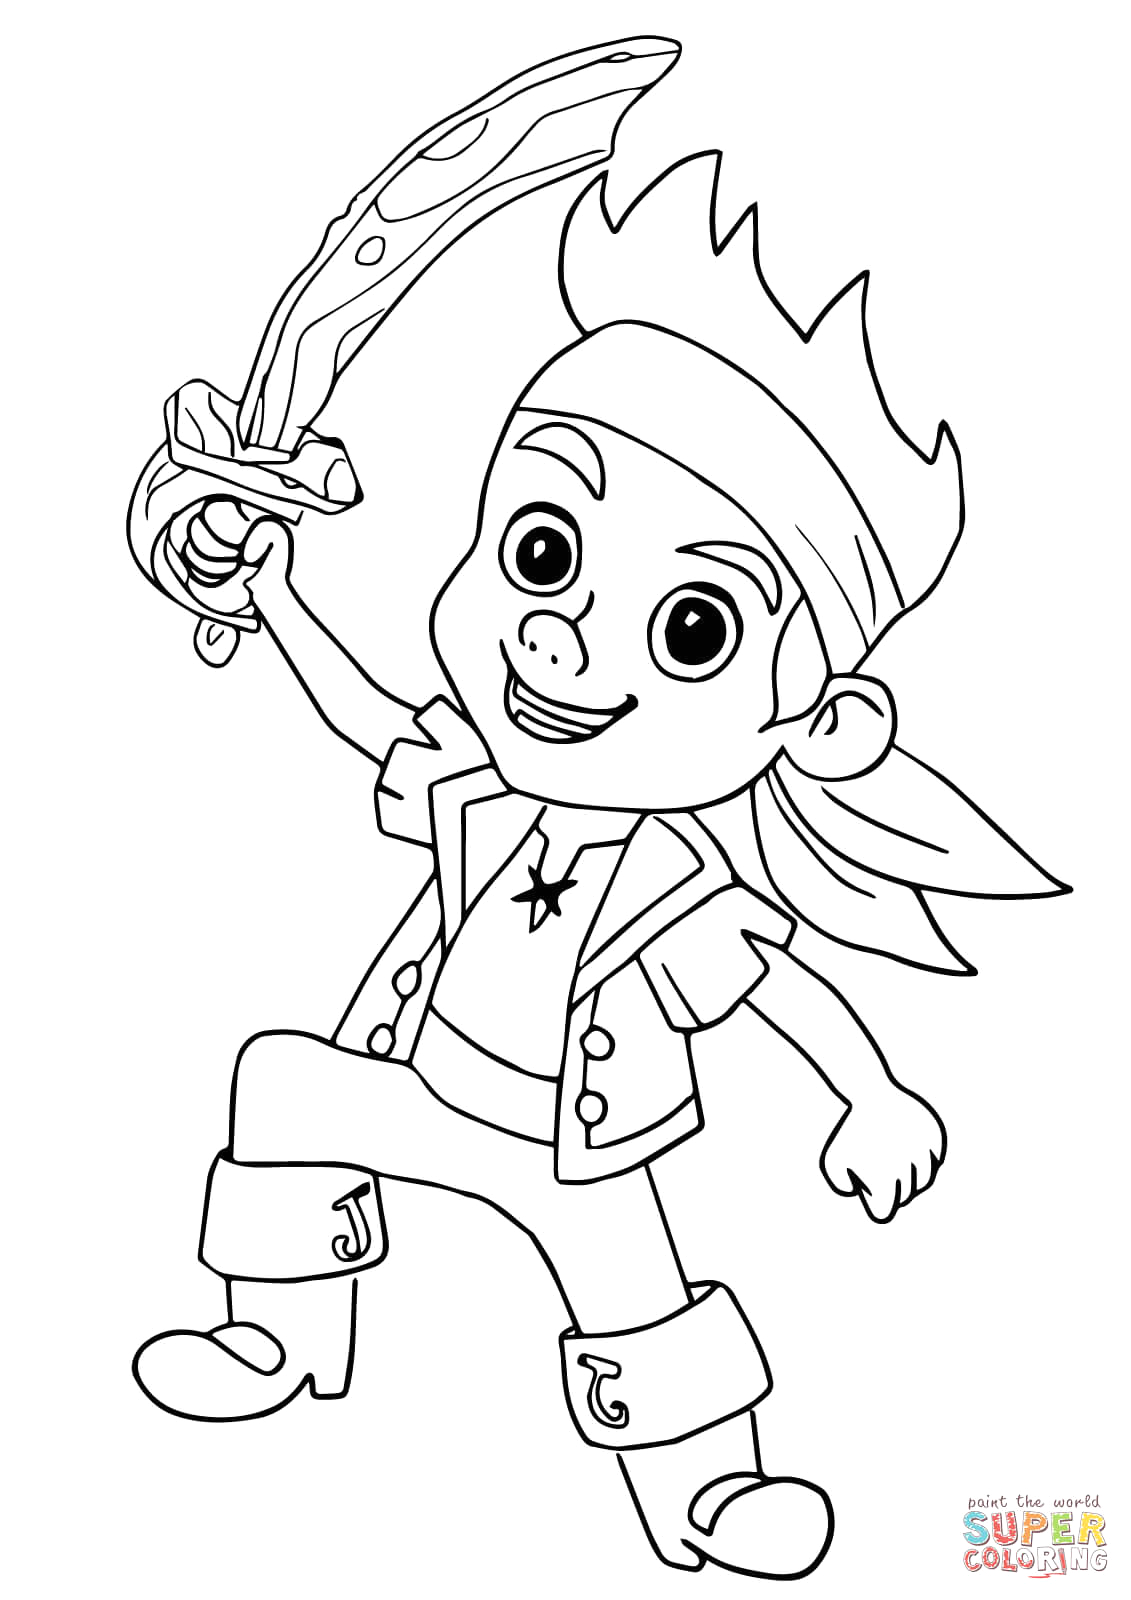 Jack and the Neverland Pirates Coloring Pages Printable Jake Pirate Coloring Page